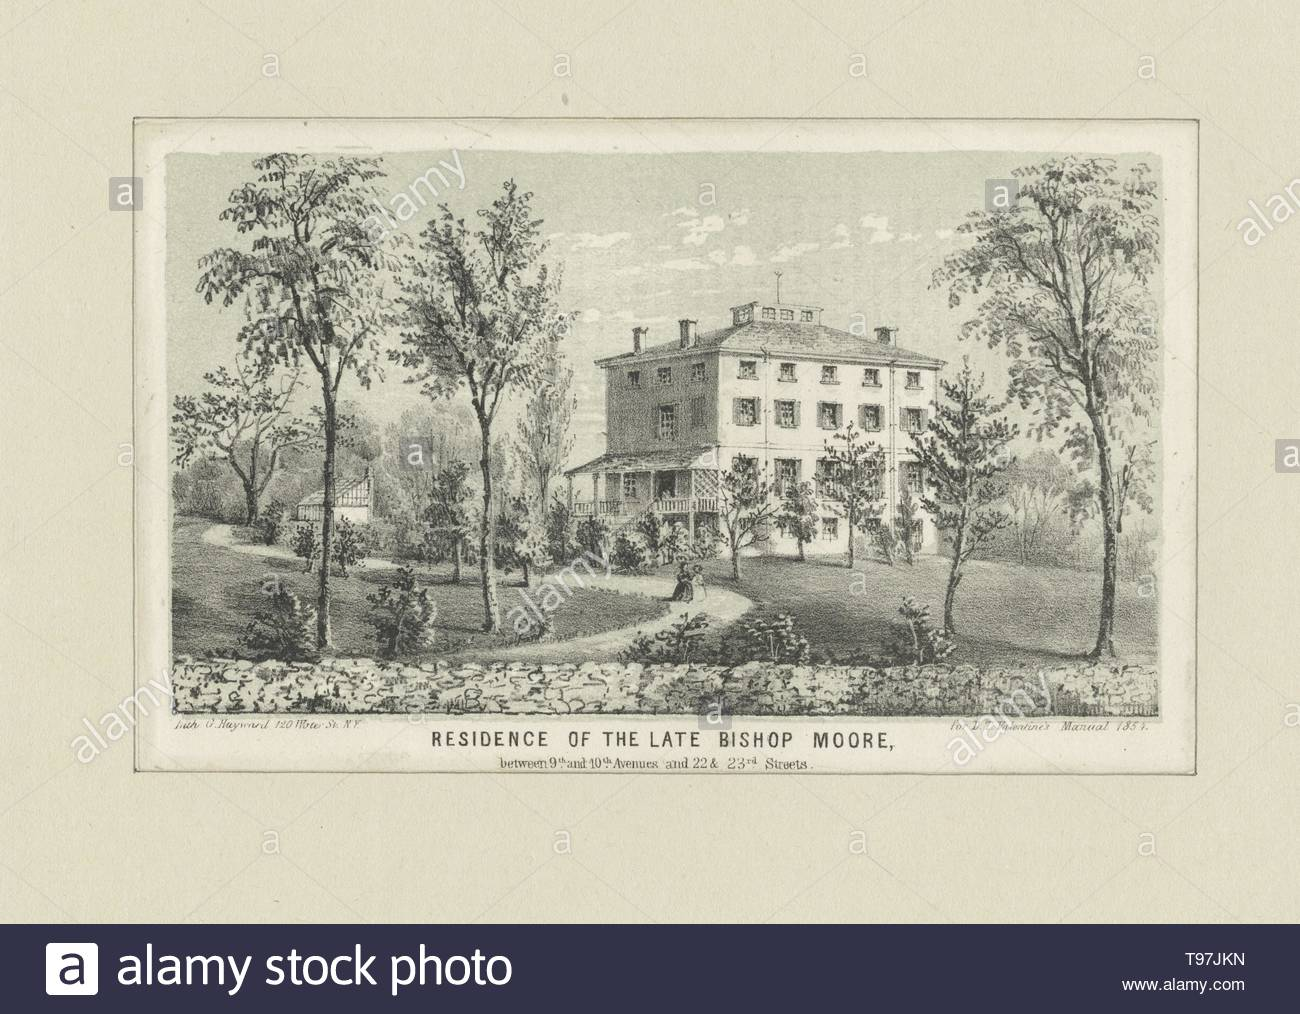 Anonymous-Residence of the late Bishop Moore between 9th and 10th Avenue and 22 and 23rd Streets - Stock Image